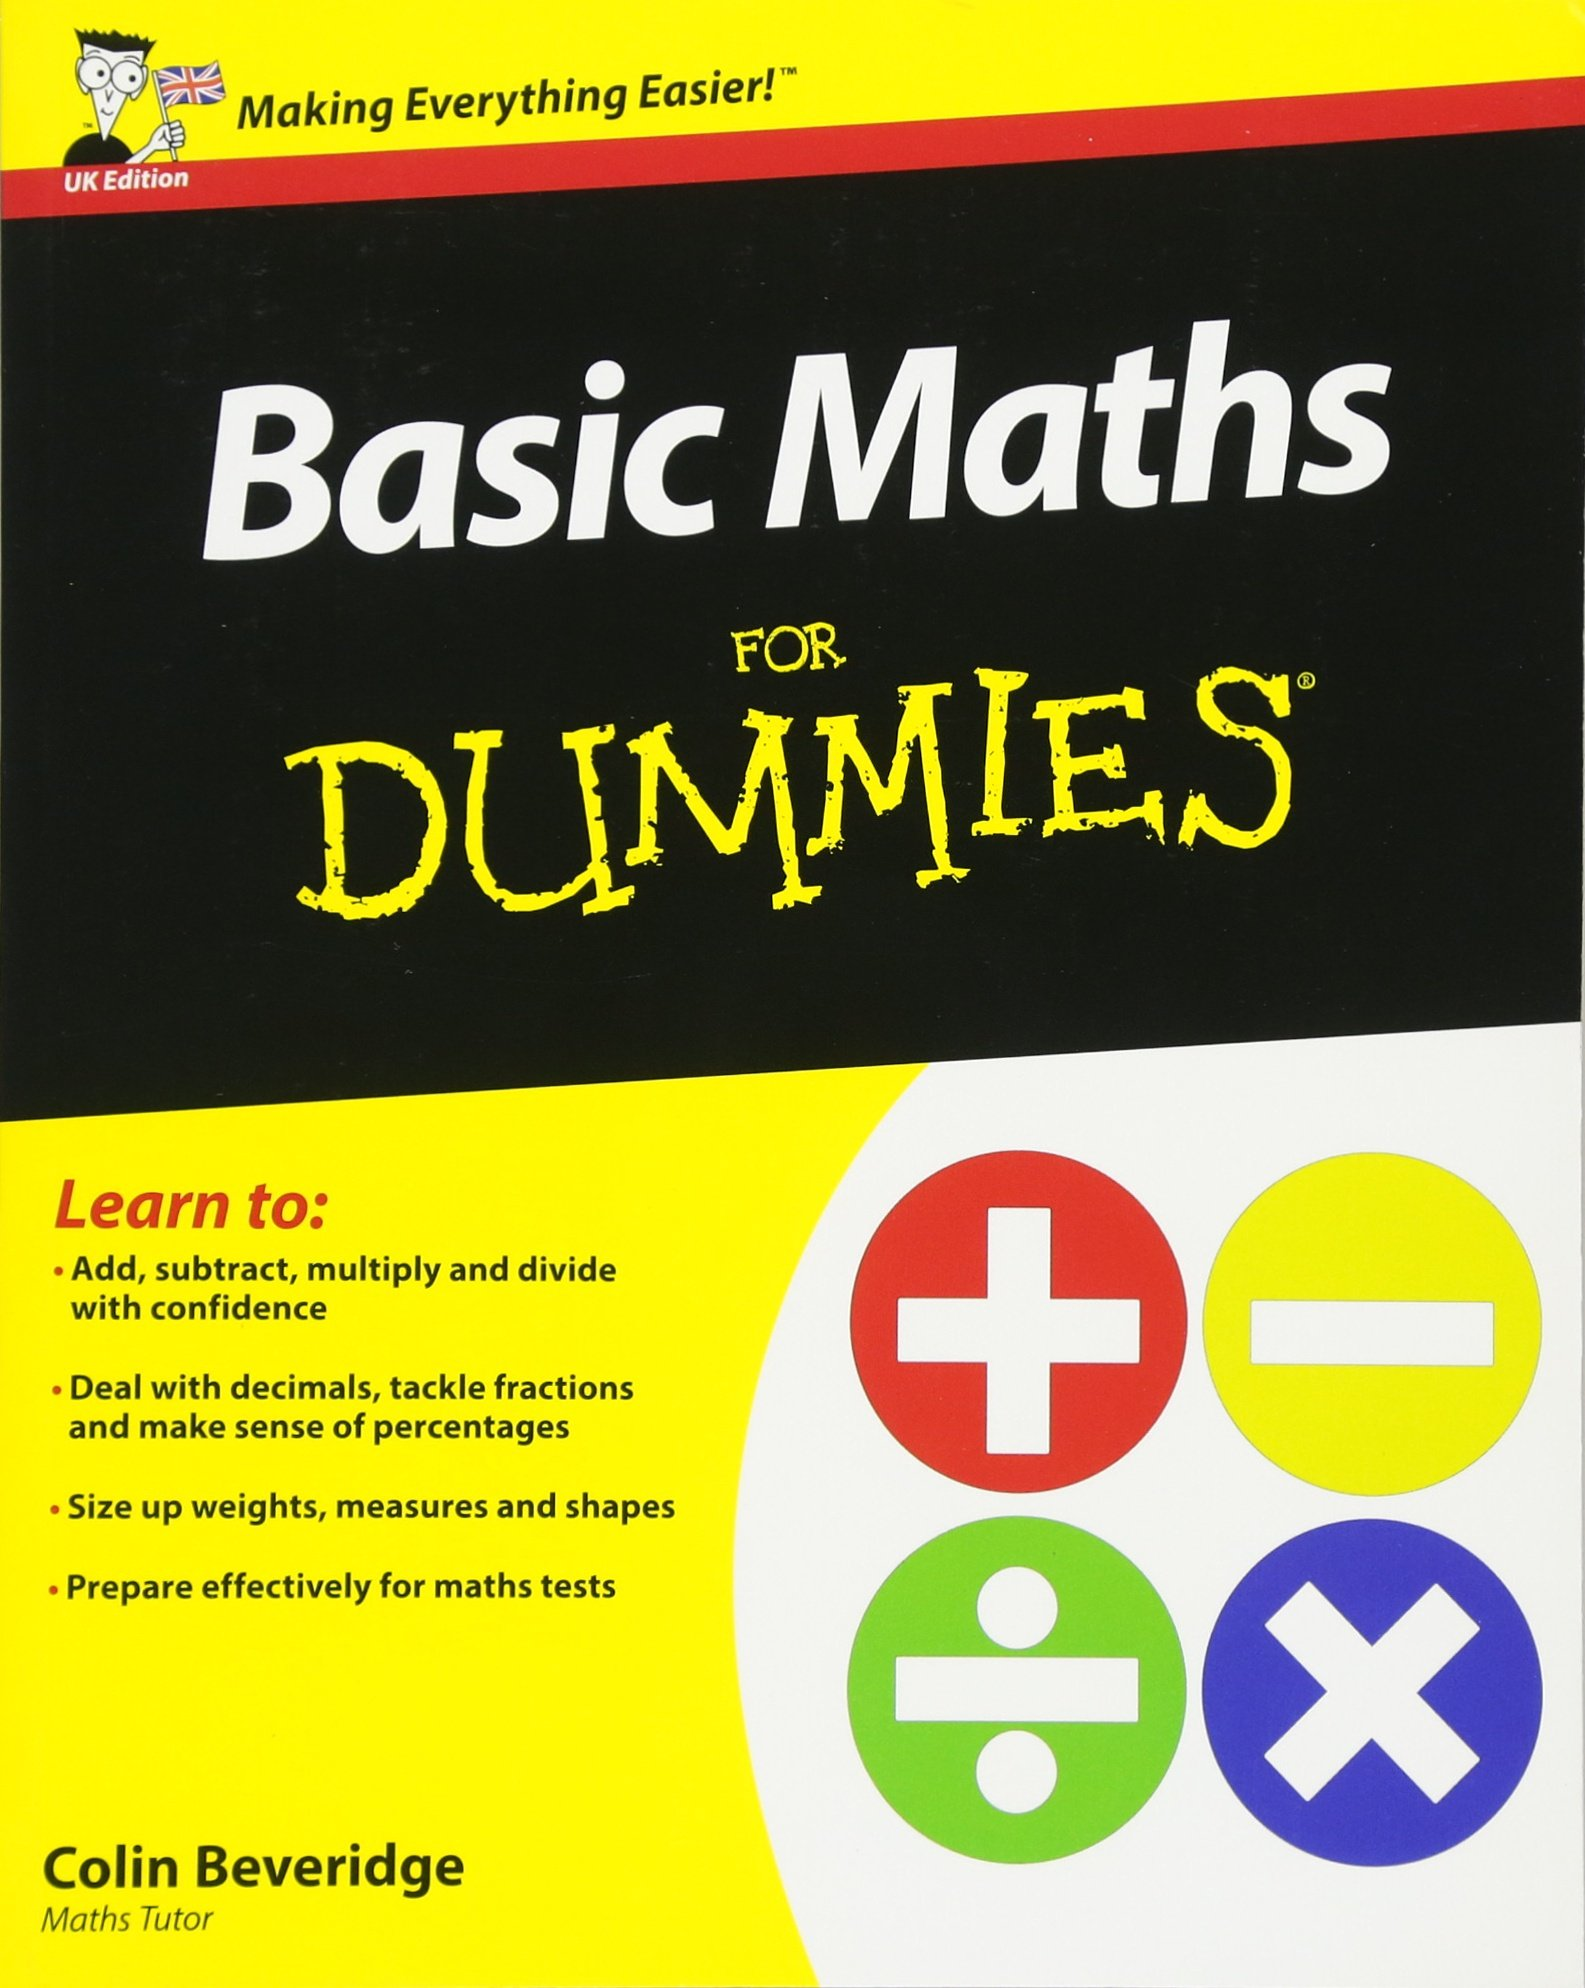 Buy Basic Maths For Dummies Book Online at Low Prices in India | Basic  Maths For Dummies Reviews & Ratings - Amazon.in